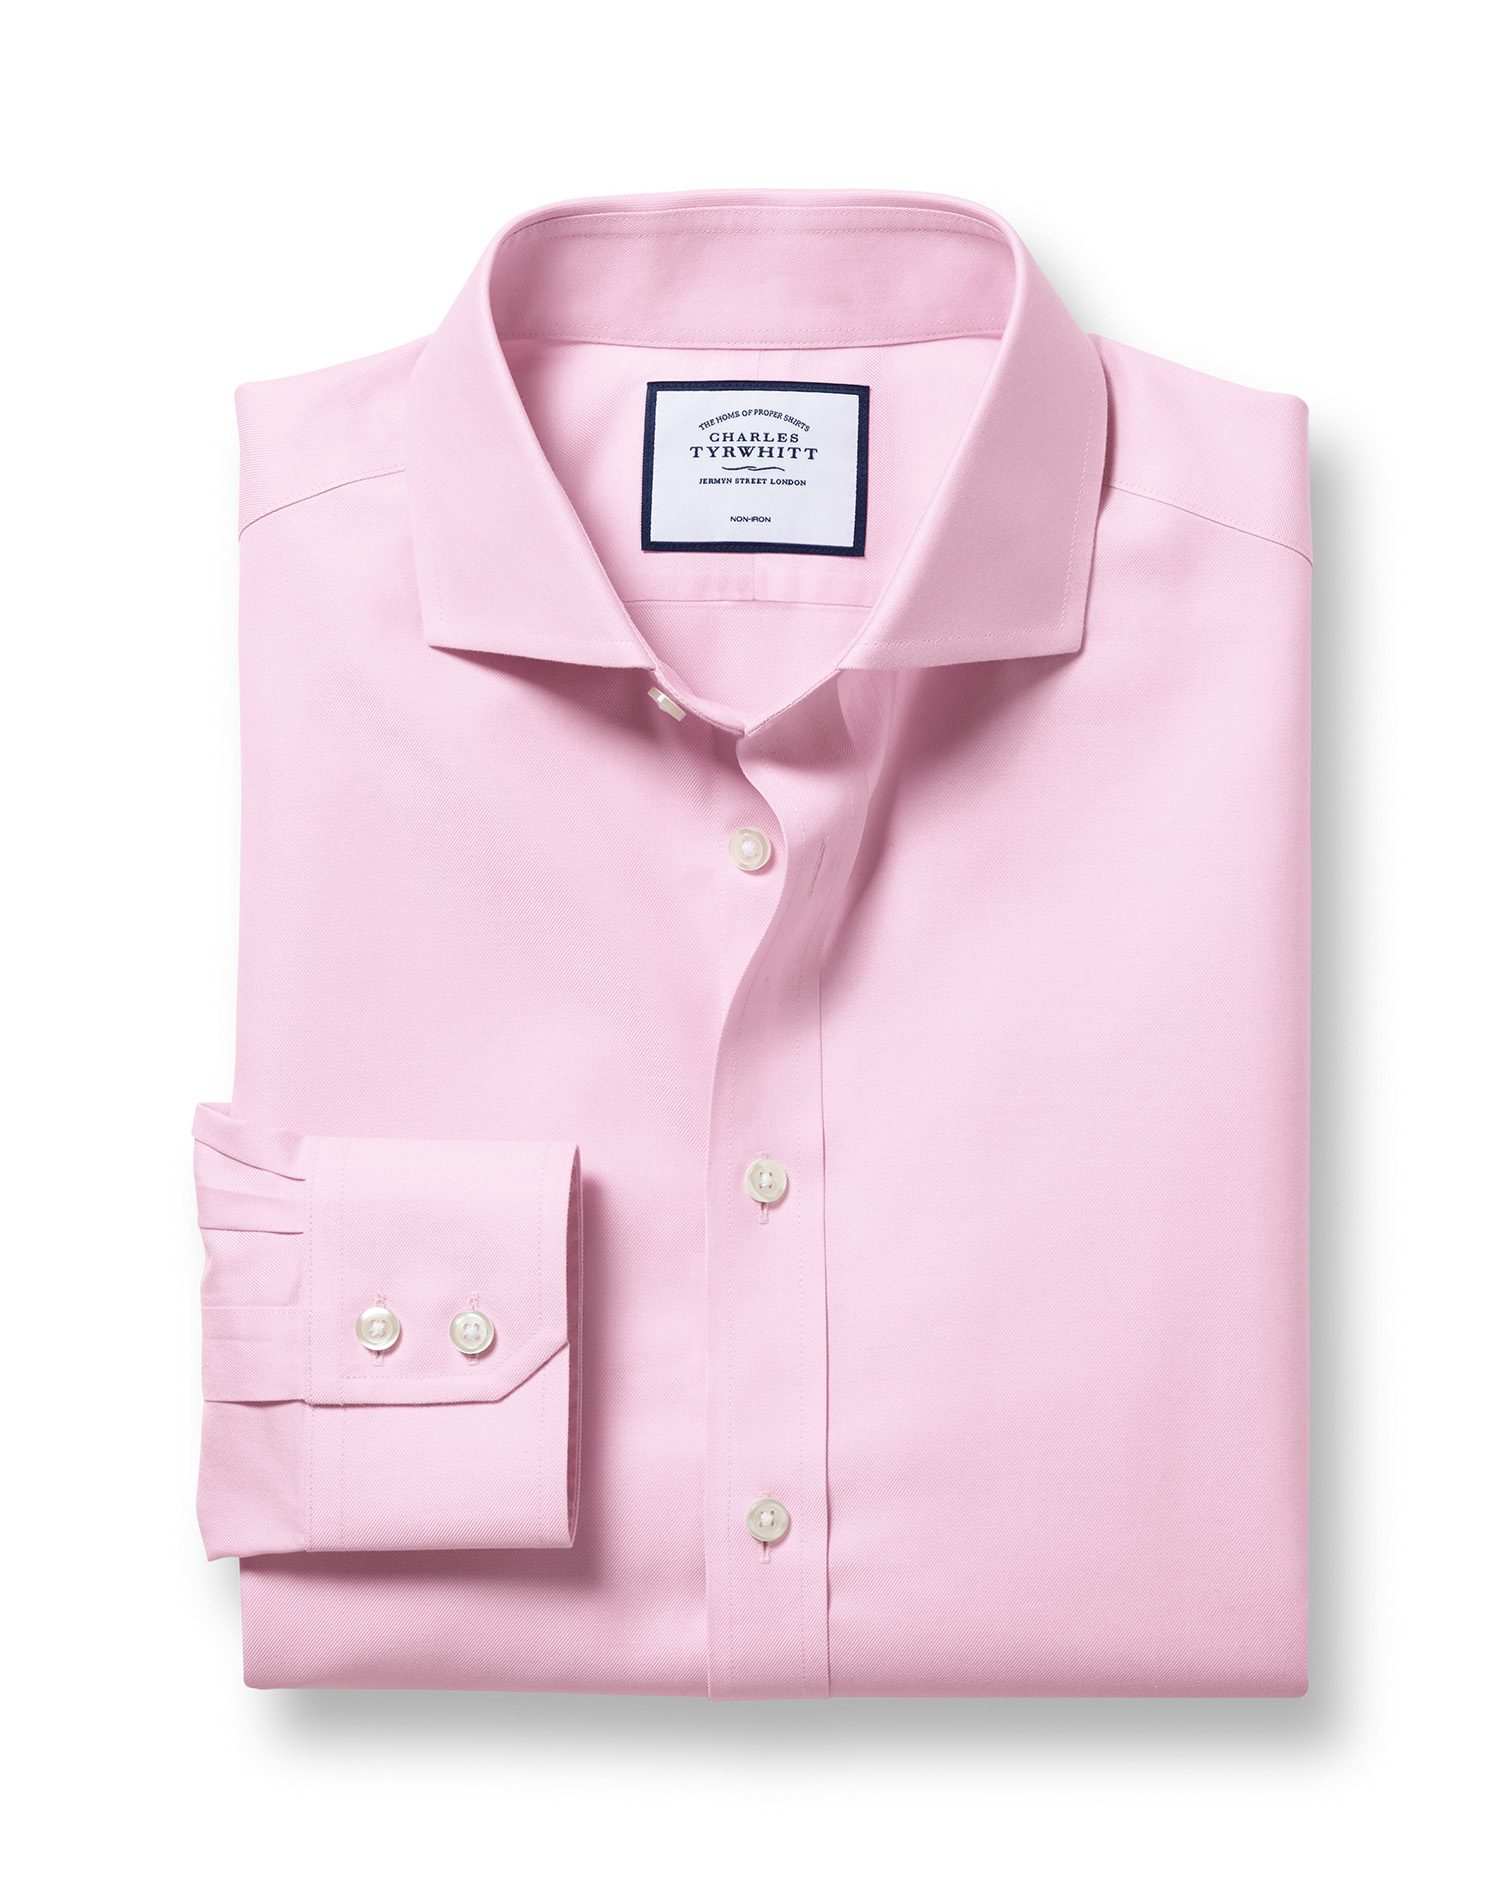 Extra Slim Fit Cutaway Non-Iron Twill Pink Cotton Formal Shirt Single Cuff Size 15.5/34 by Charles T